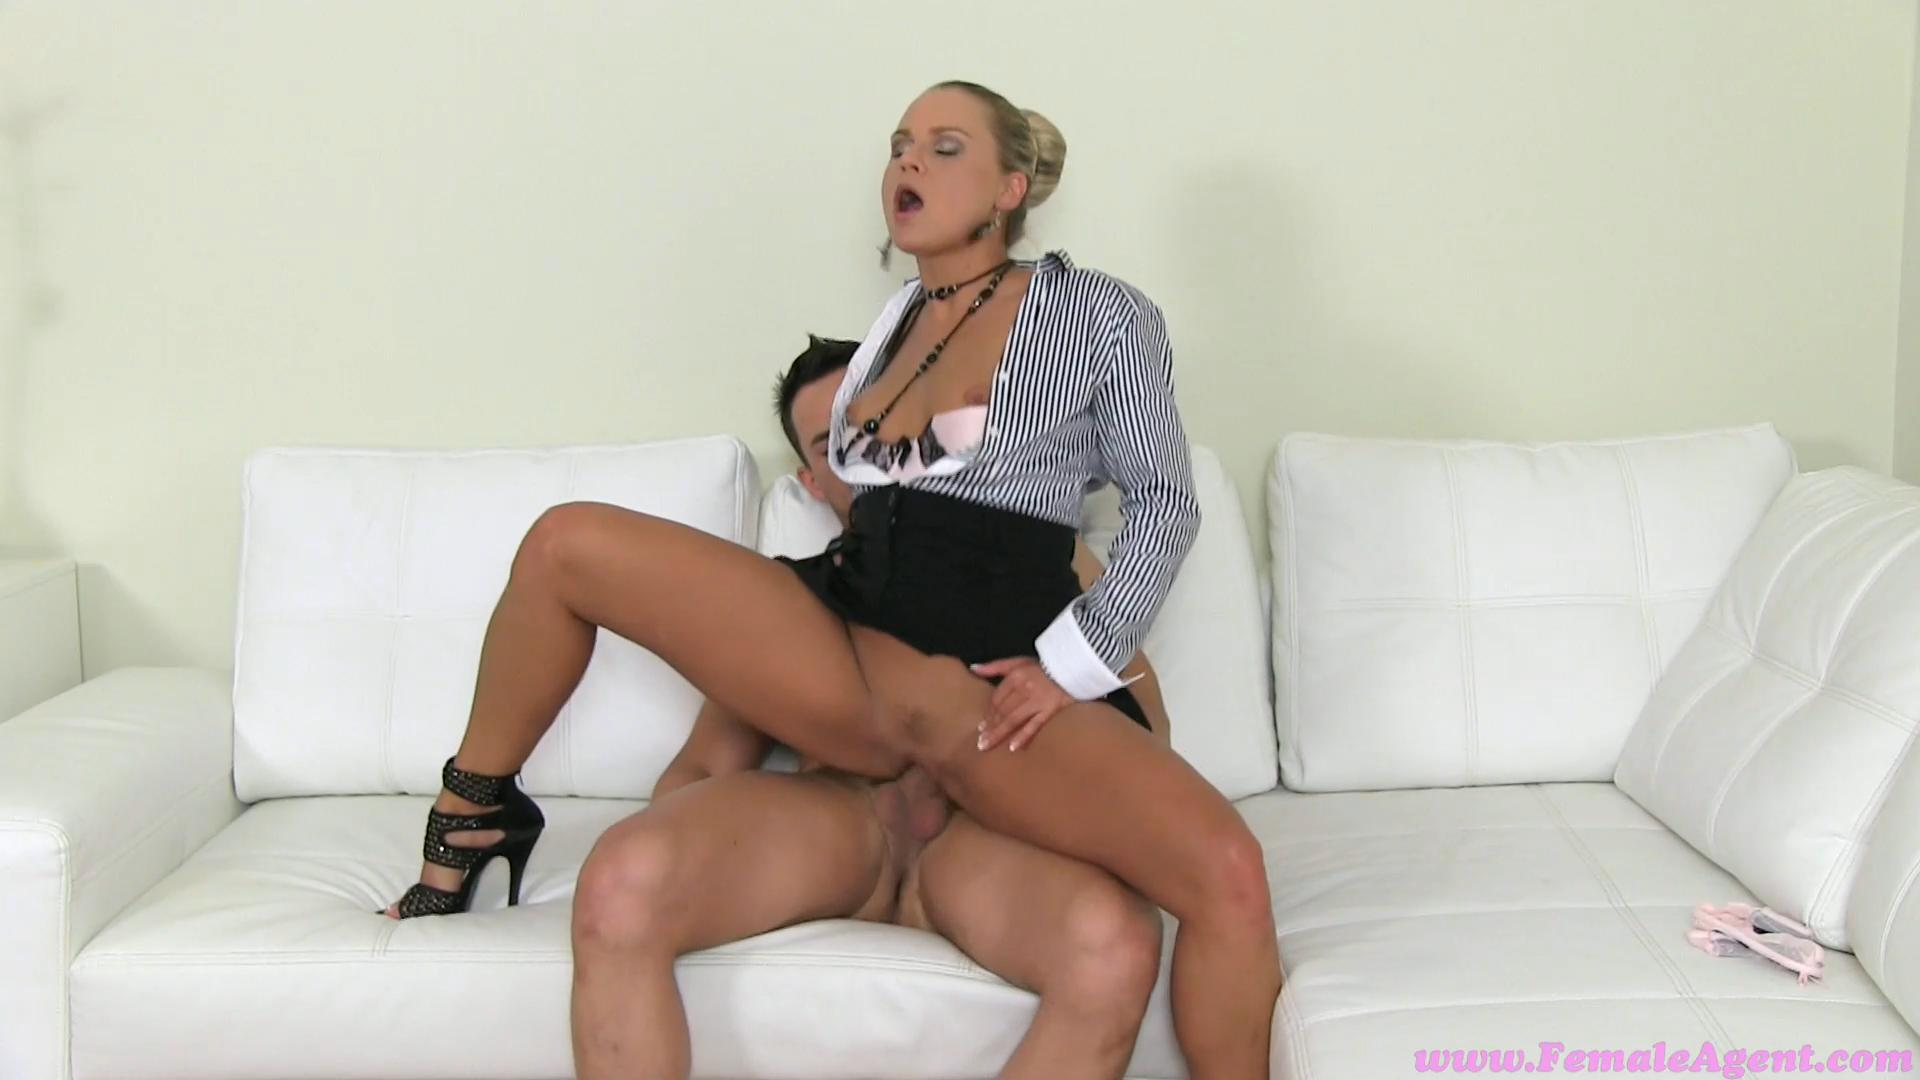 Femaleagent milf fucks hot girls boyfriend in front of her 6